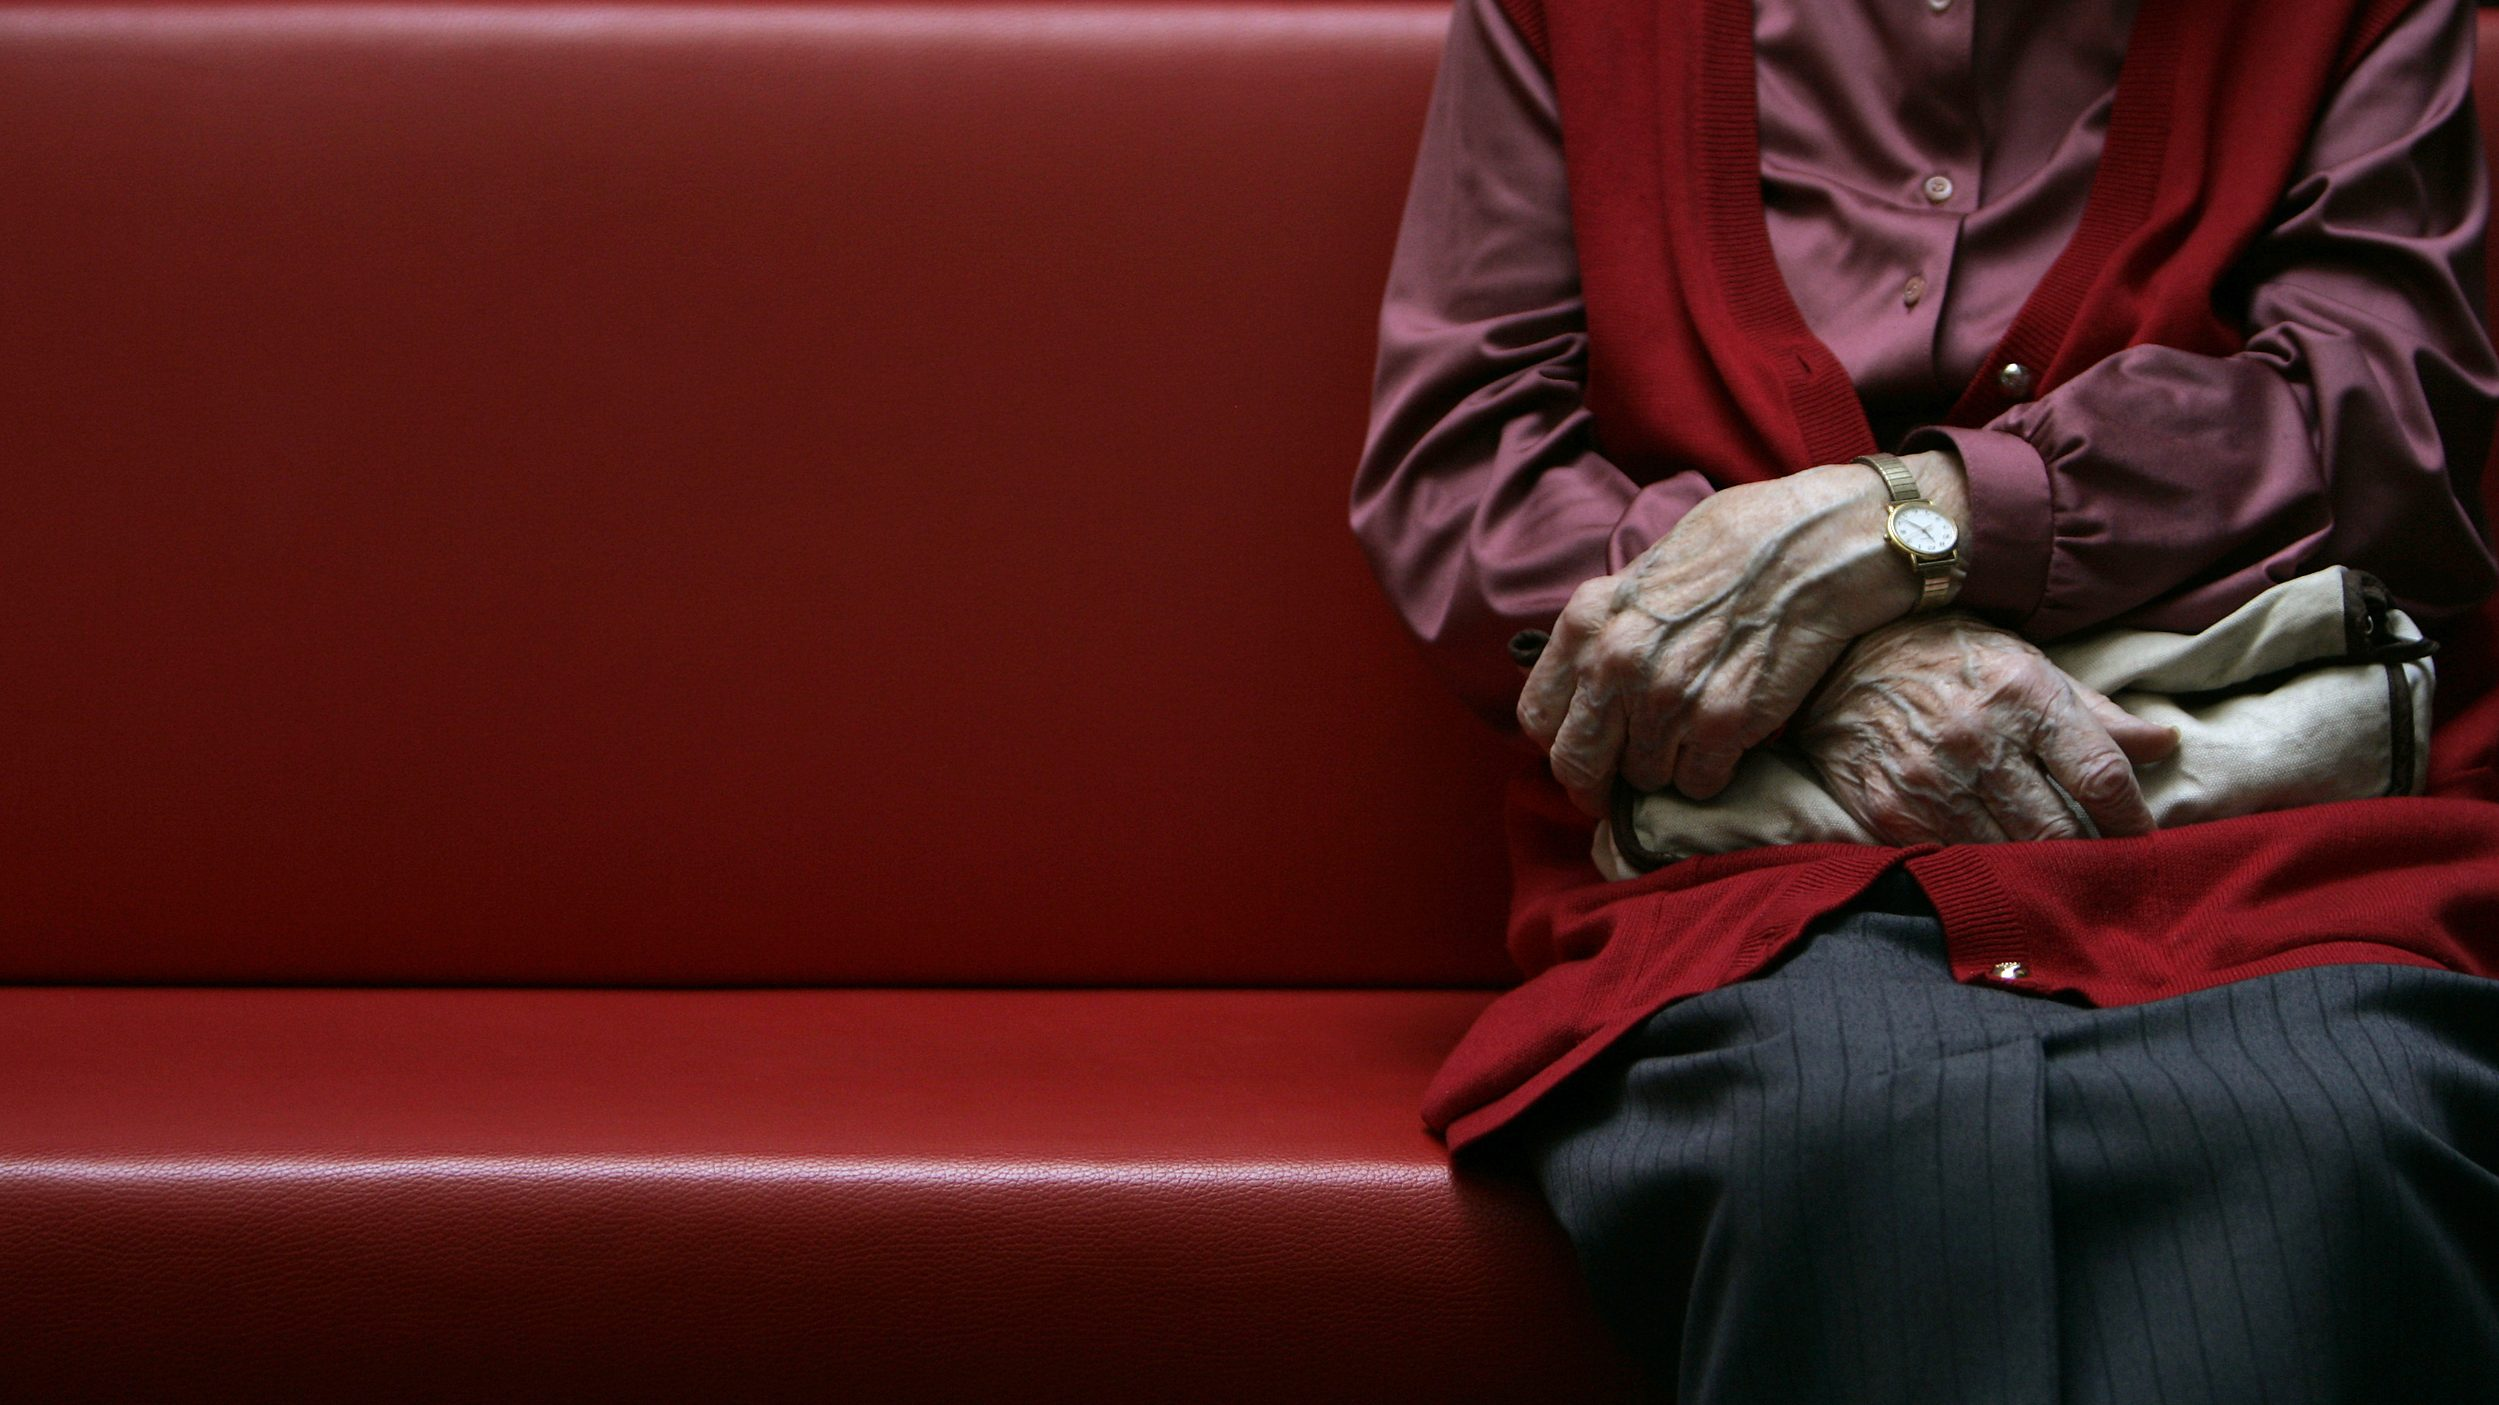 An image of a person sitting at the end of a Church pew